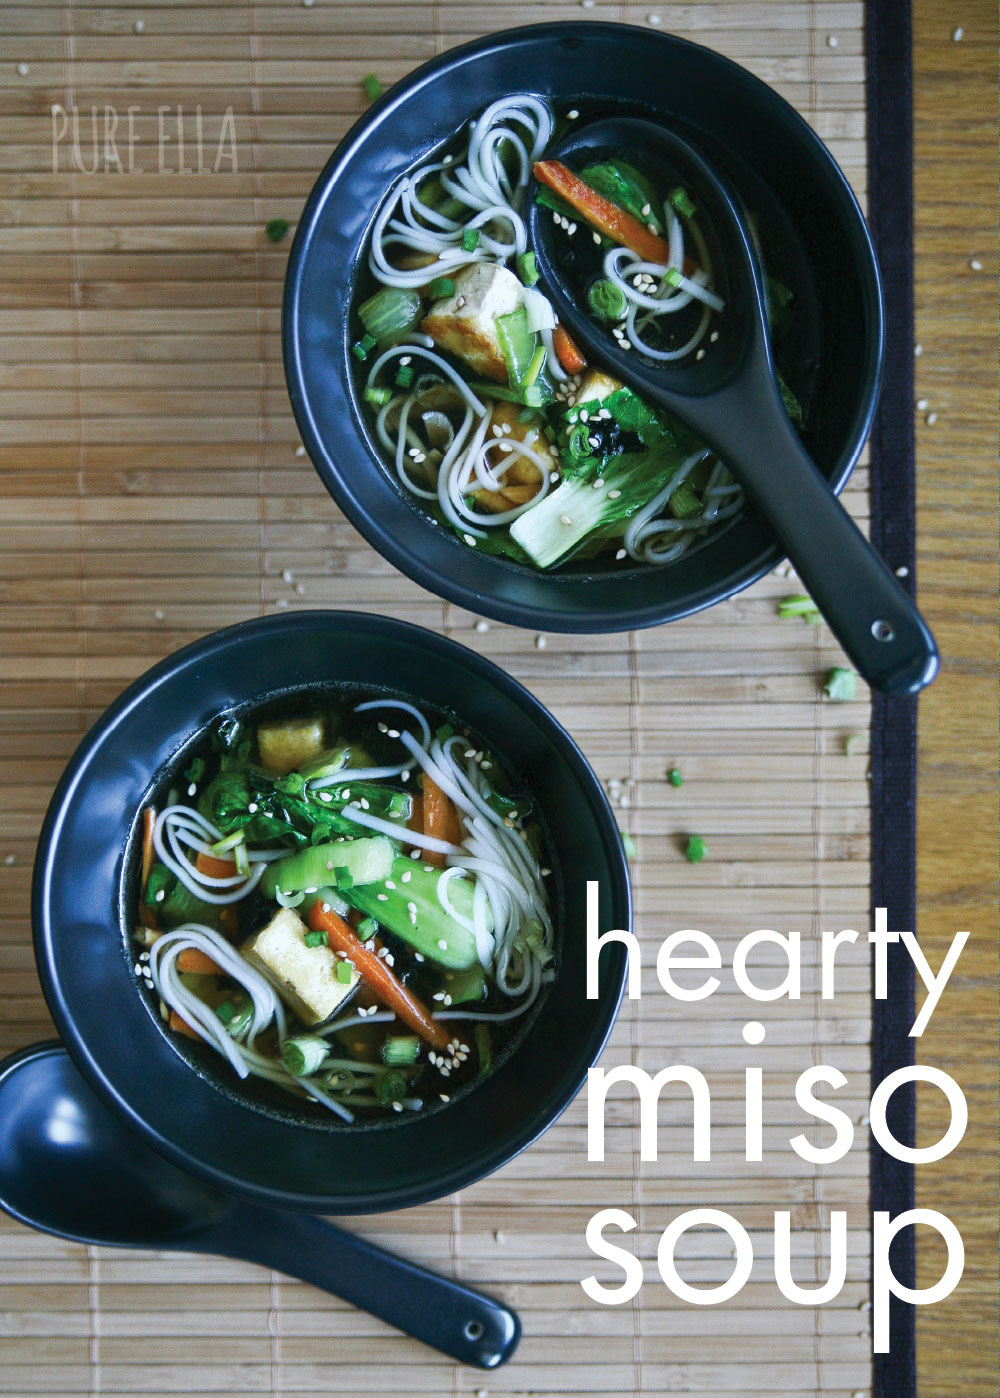 Pure-Ella-Hearty-Vegan-Miso-Soup-1